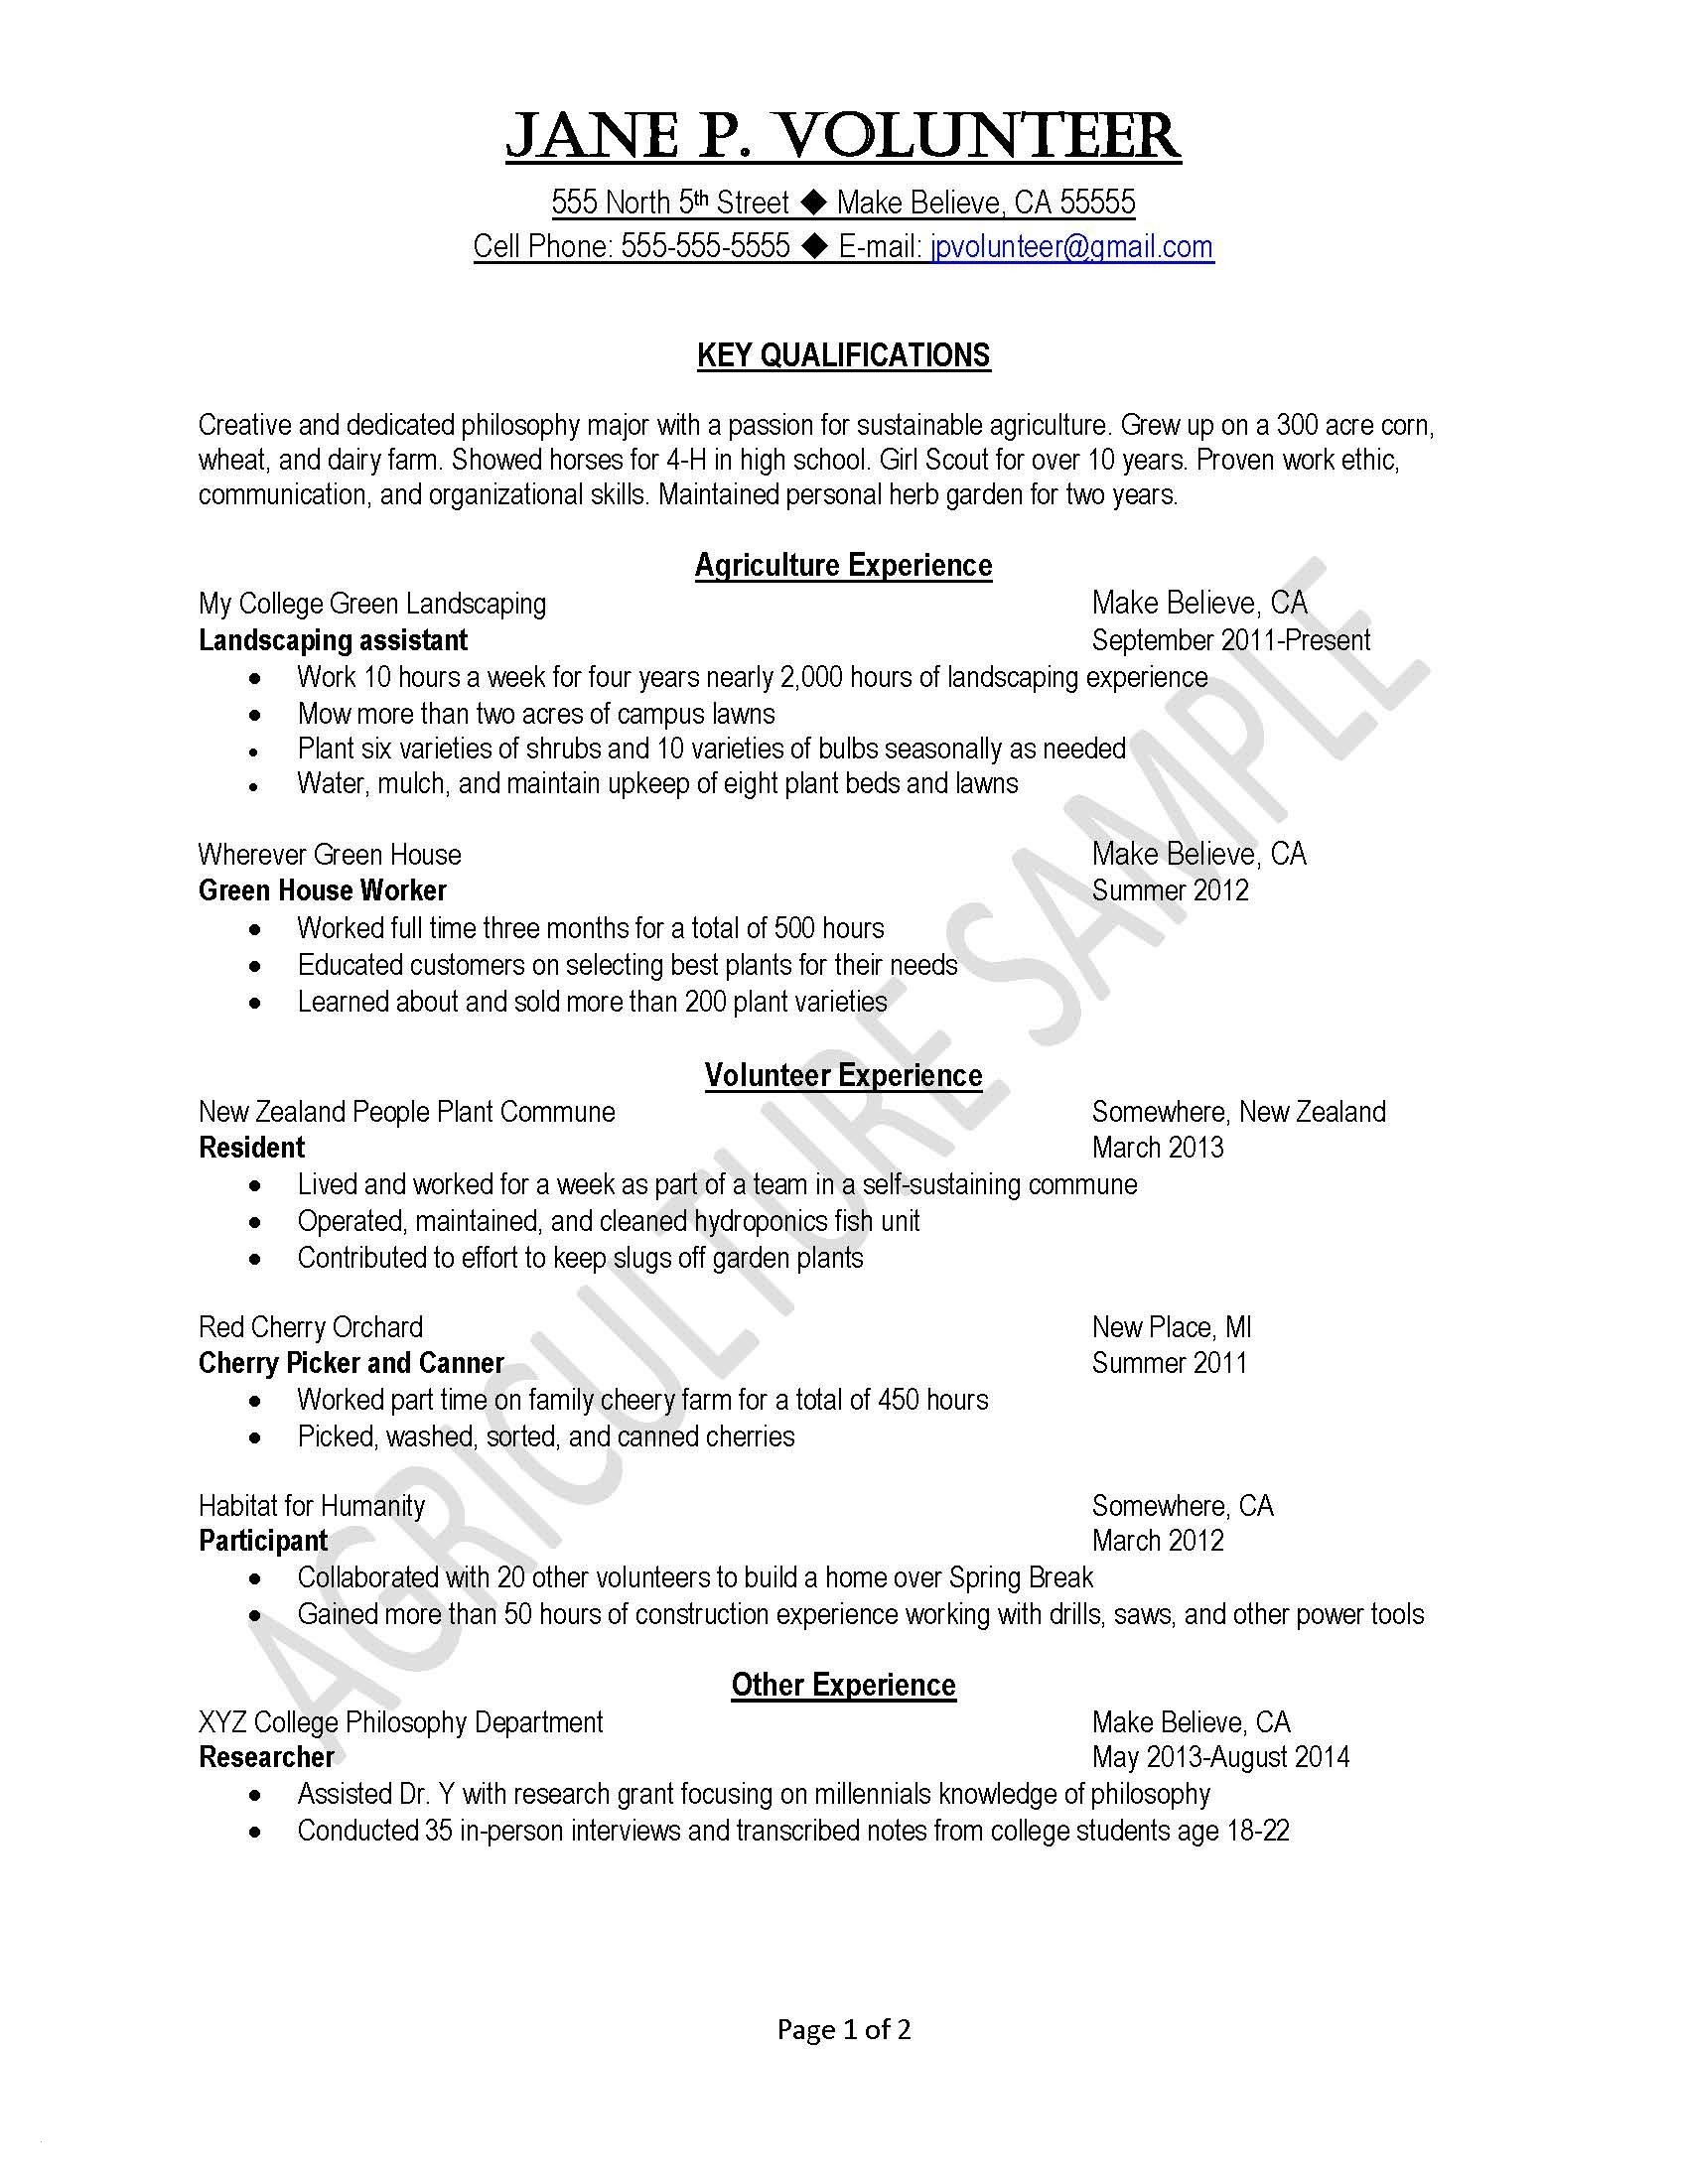 Resume for College Applications - Resume Templates for College Applications Awesome Awesome Sample